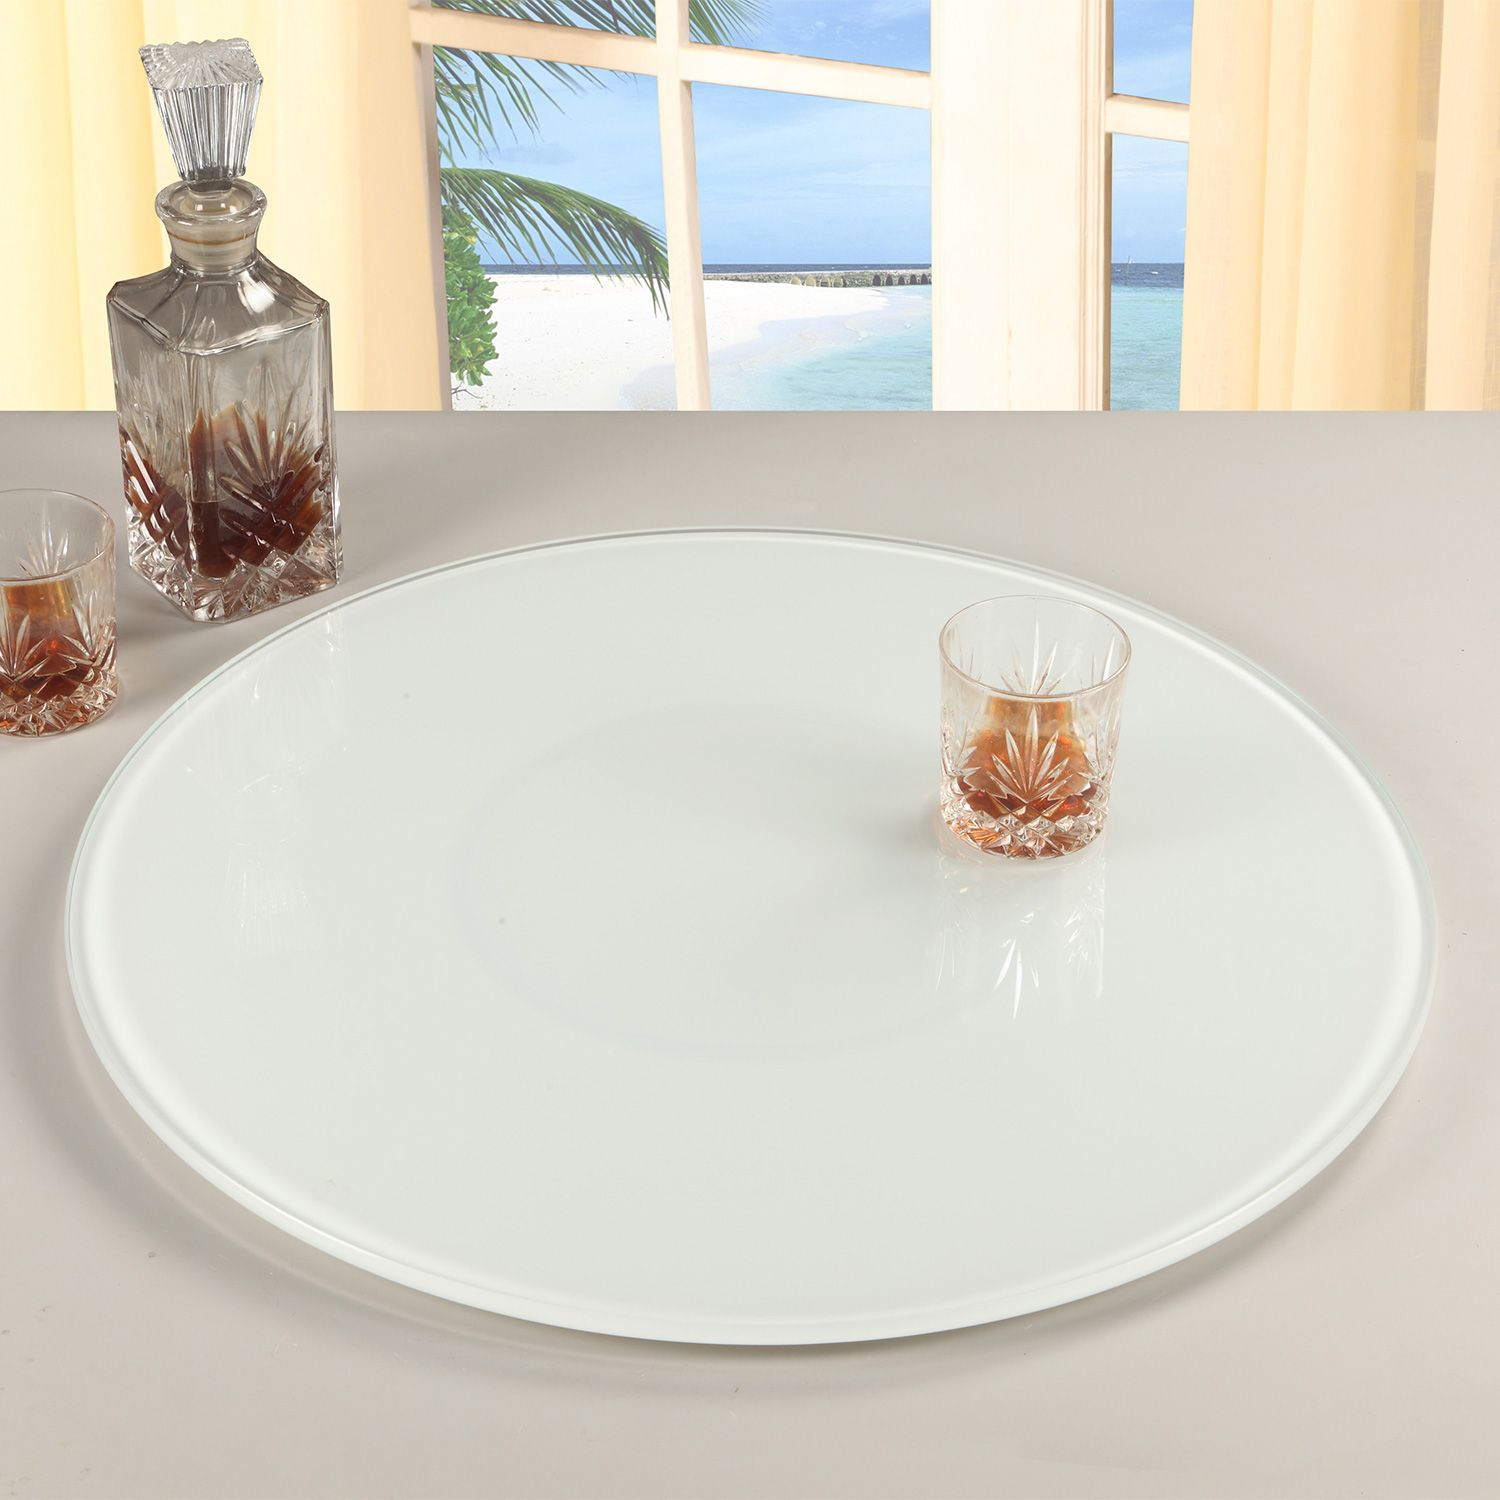 Chintaly Imports Lazy Susan 24 Wht 24 Round Glass Rotating Tray